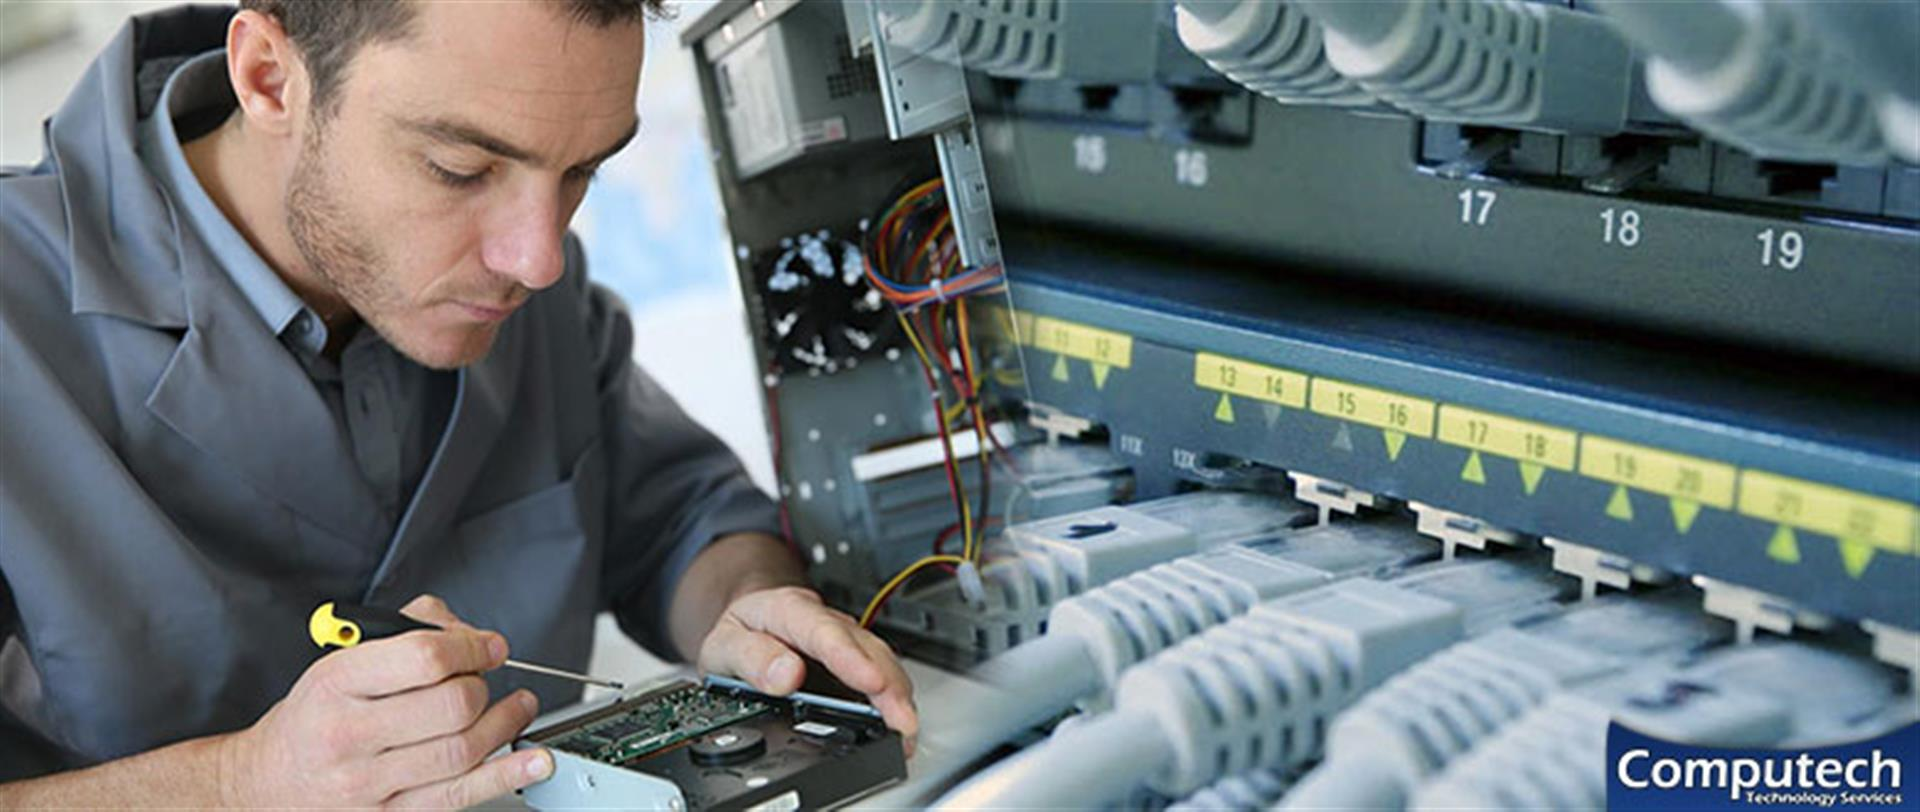 Douglas Arizona On Site PC & Printer Repair, Network, Telecom Voice and Data Wiring Solutions